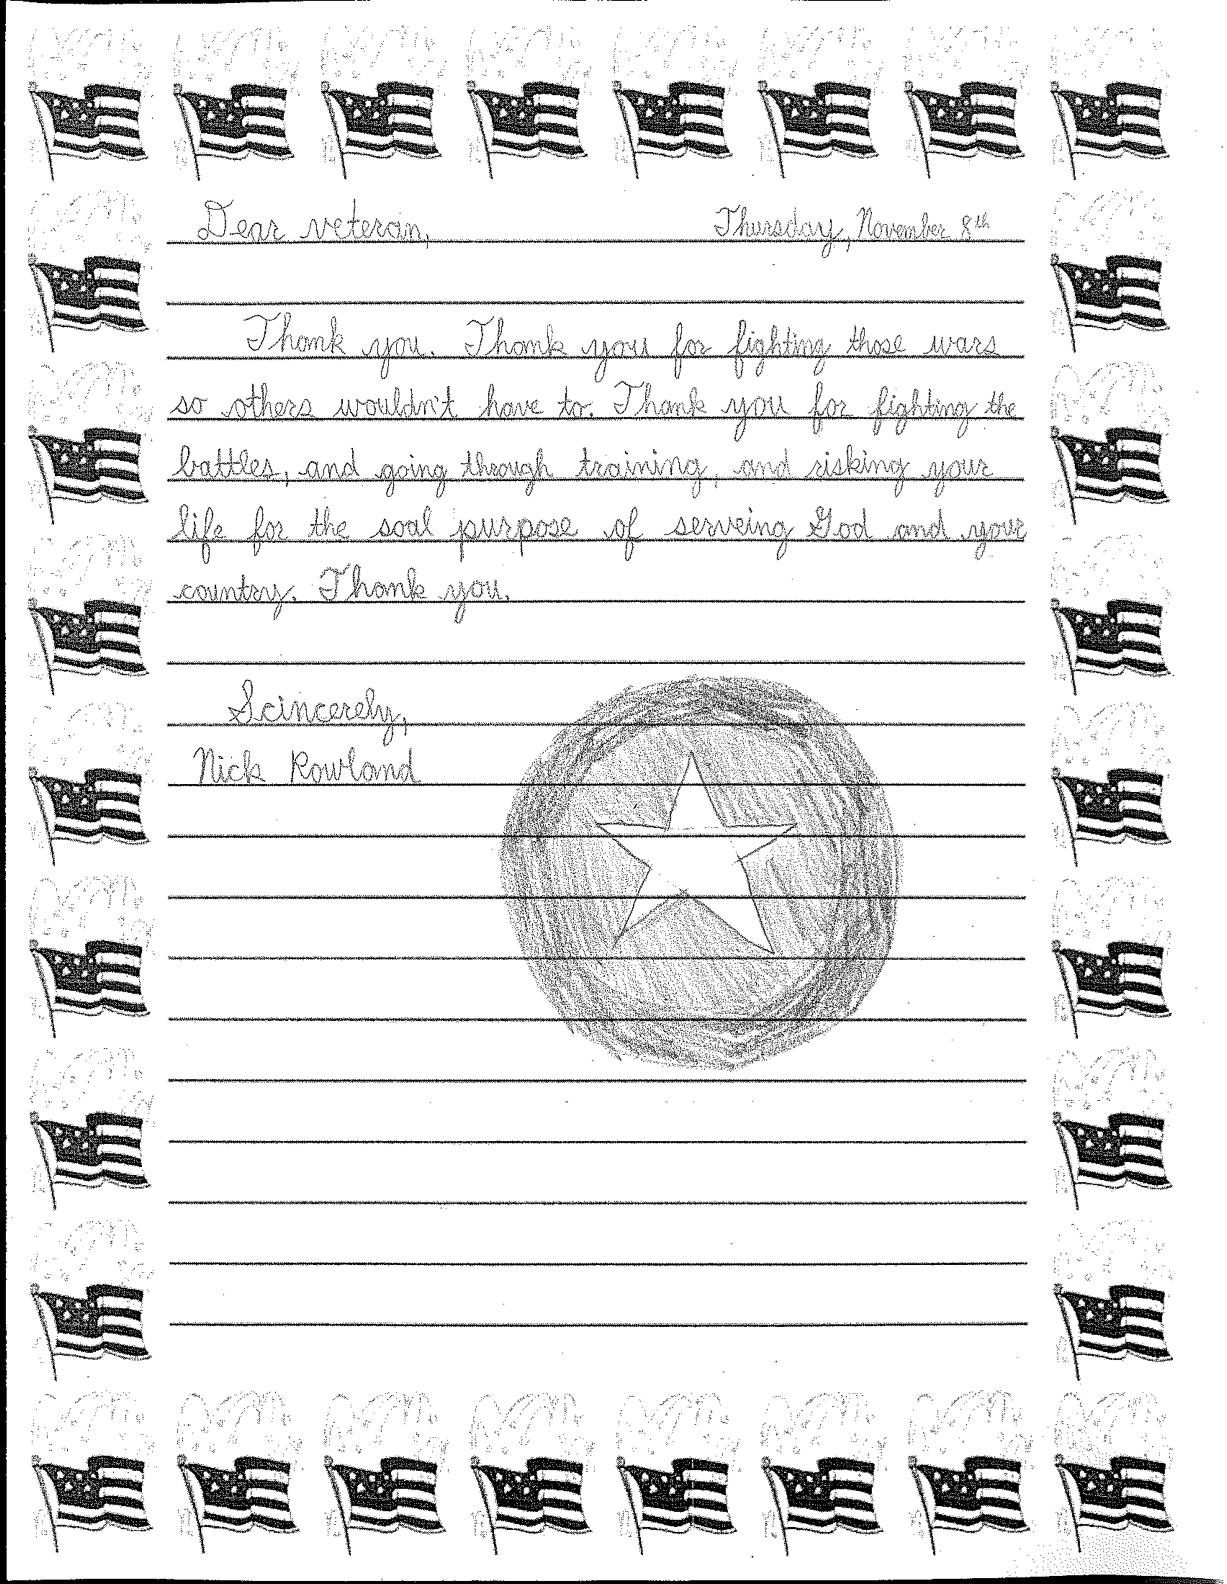 veterans day letter template veterans day thank you letter image collections letter format